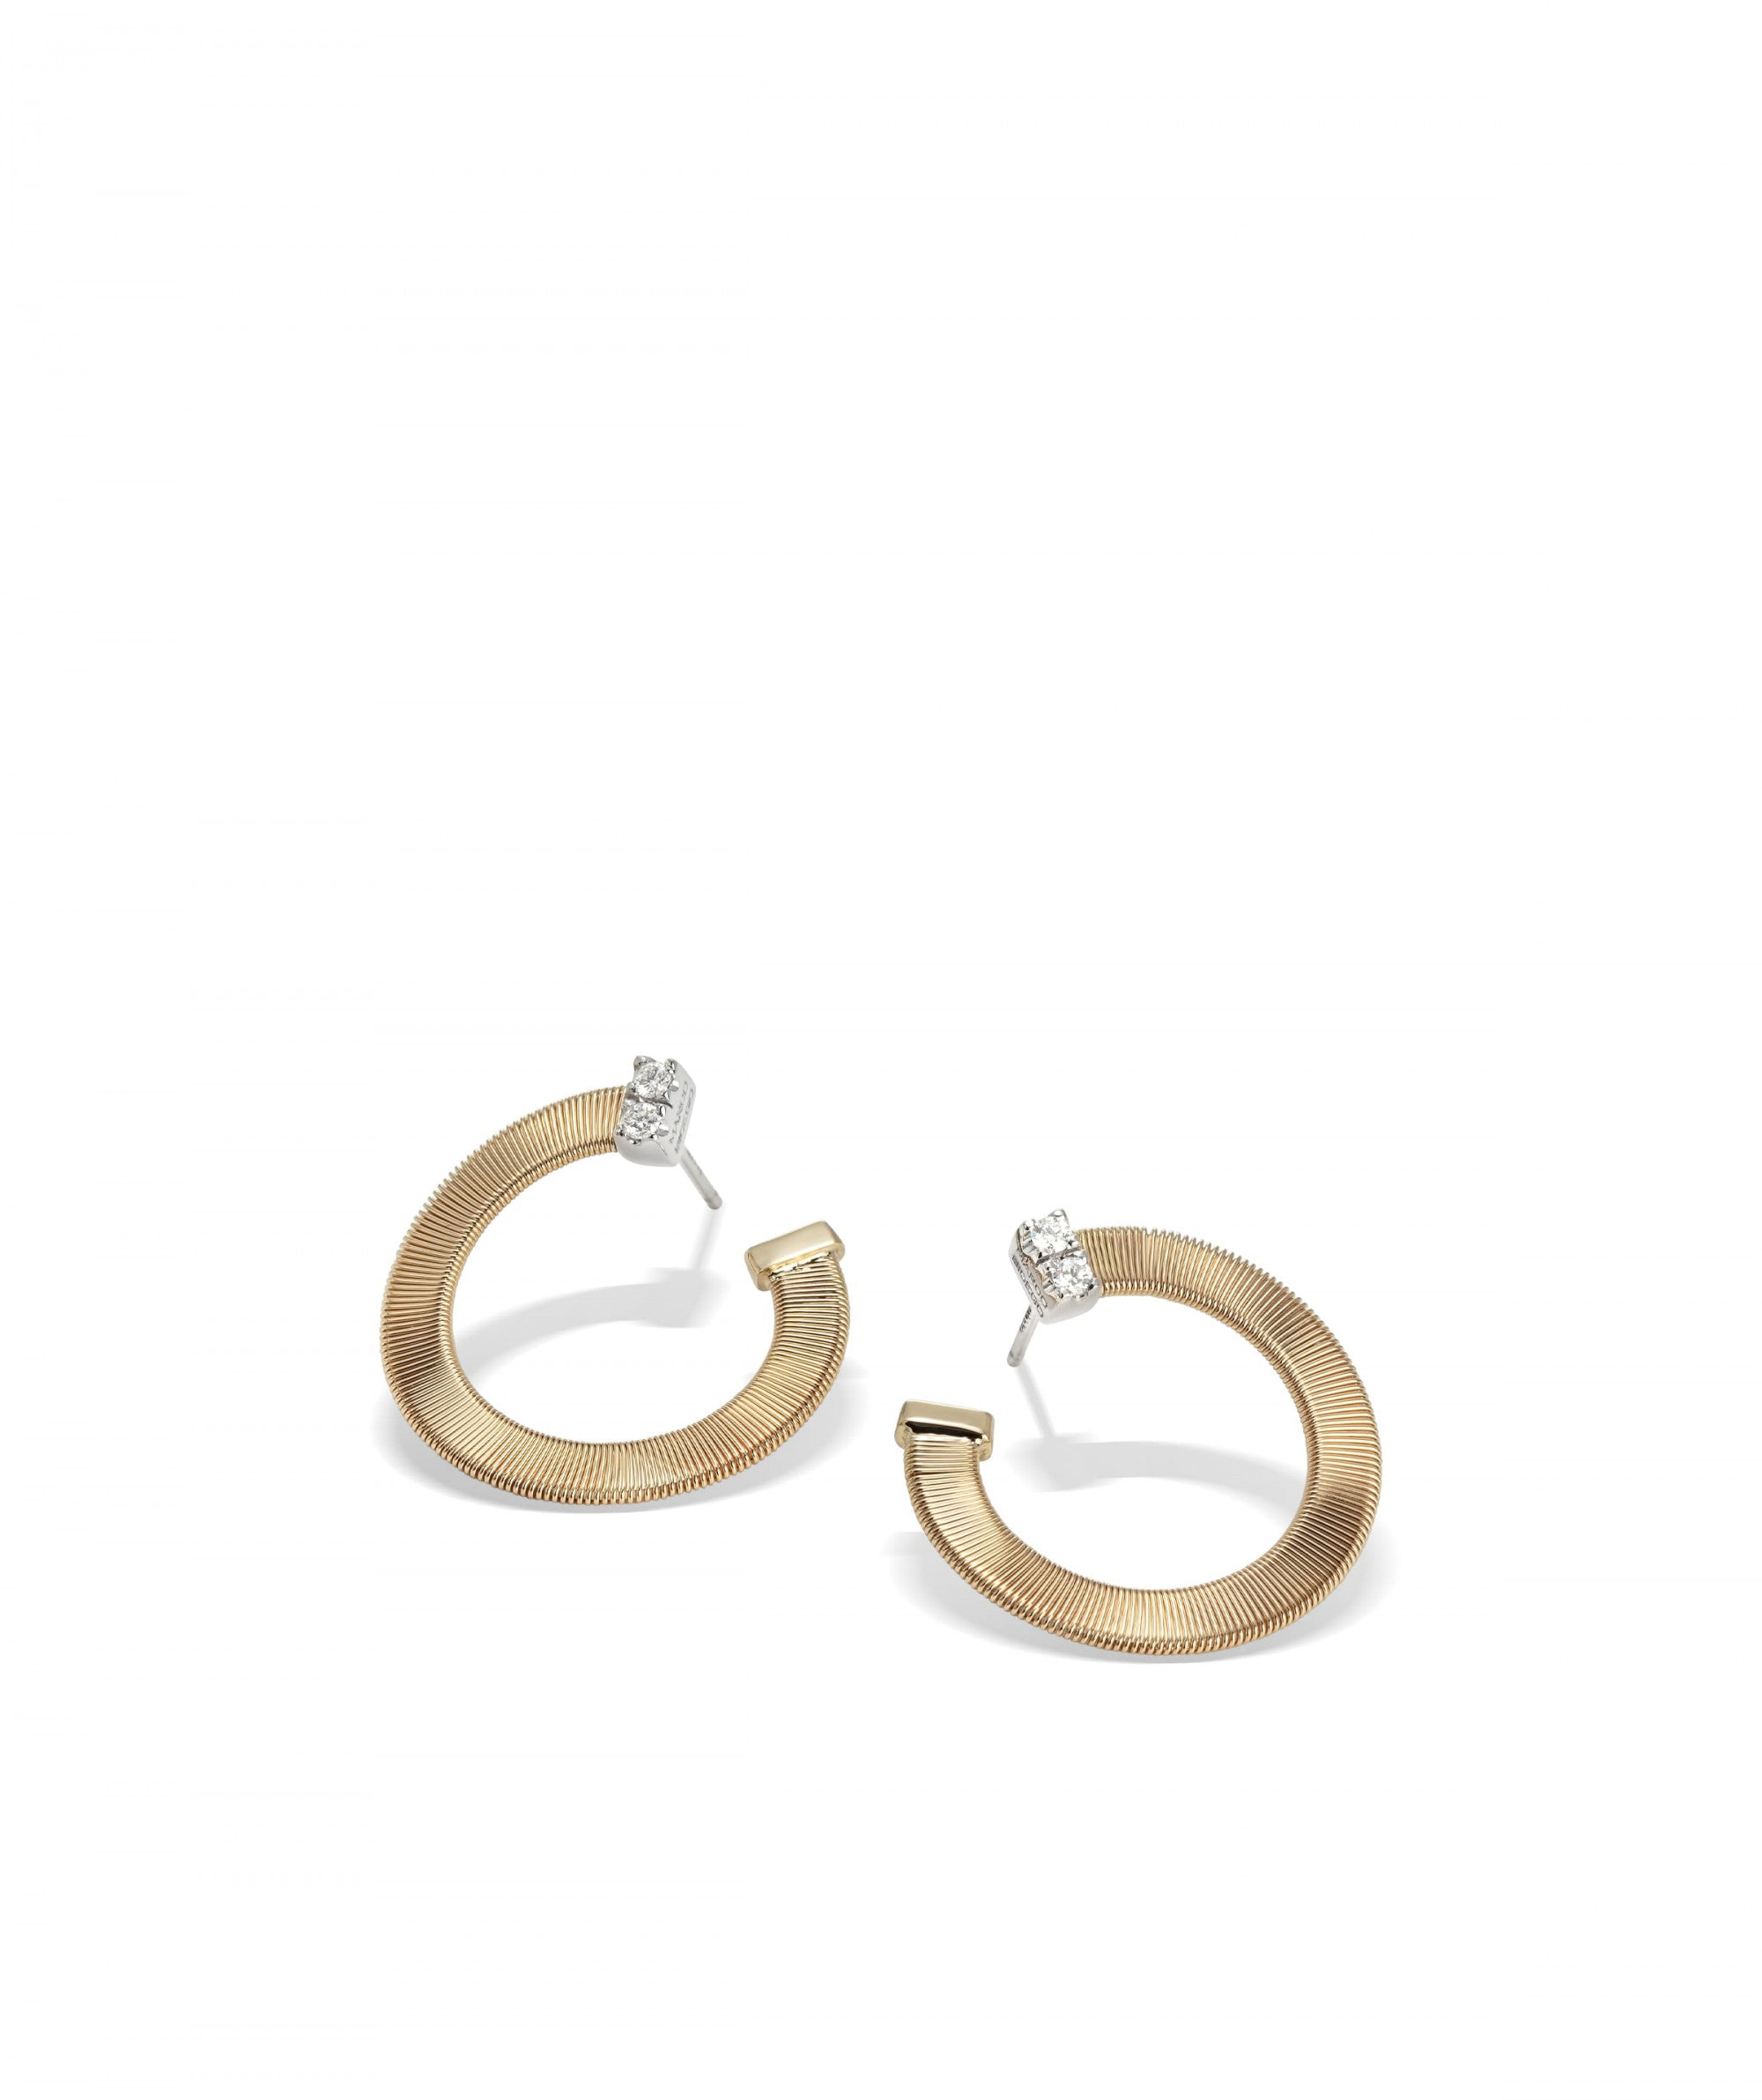 Masai Earrings in 18k Yellow Gold with Pave Diamonds - Orsini Jewellers NZ